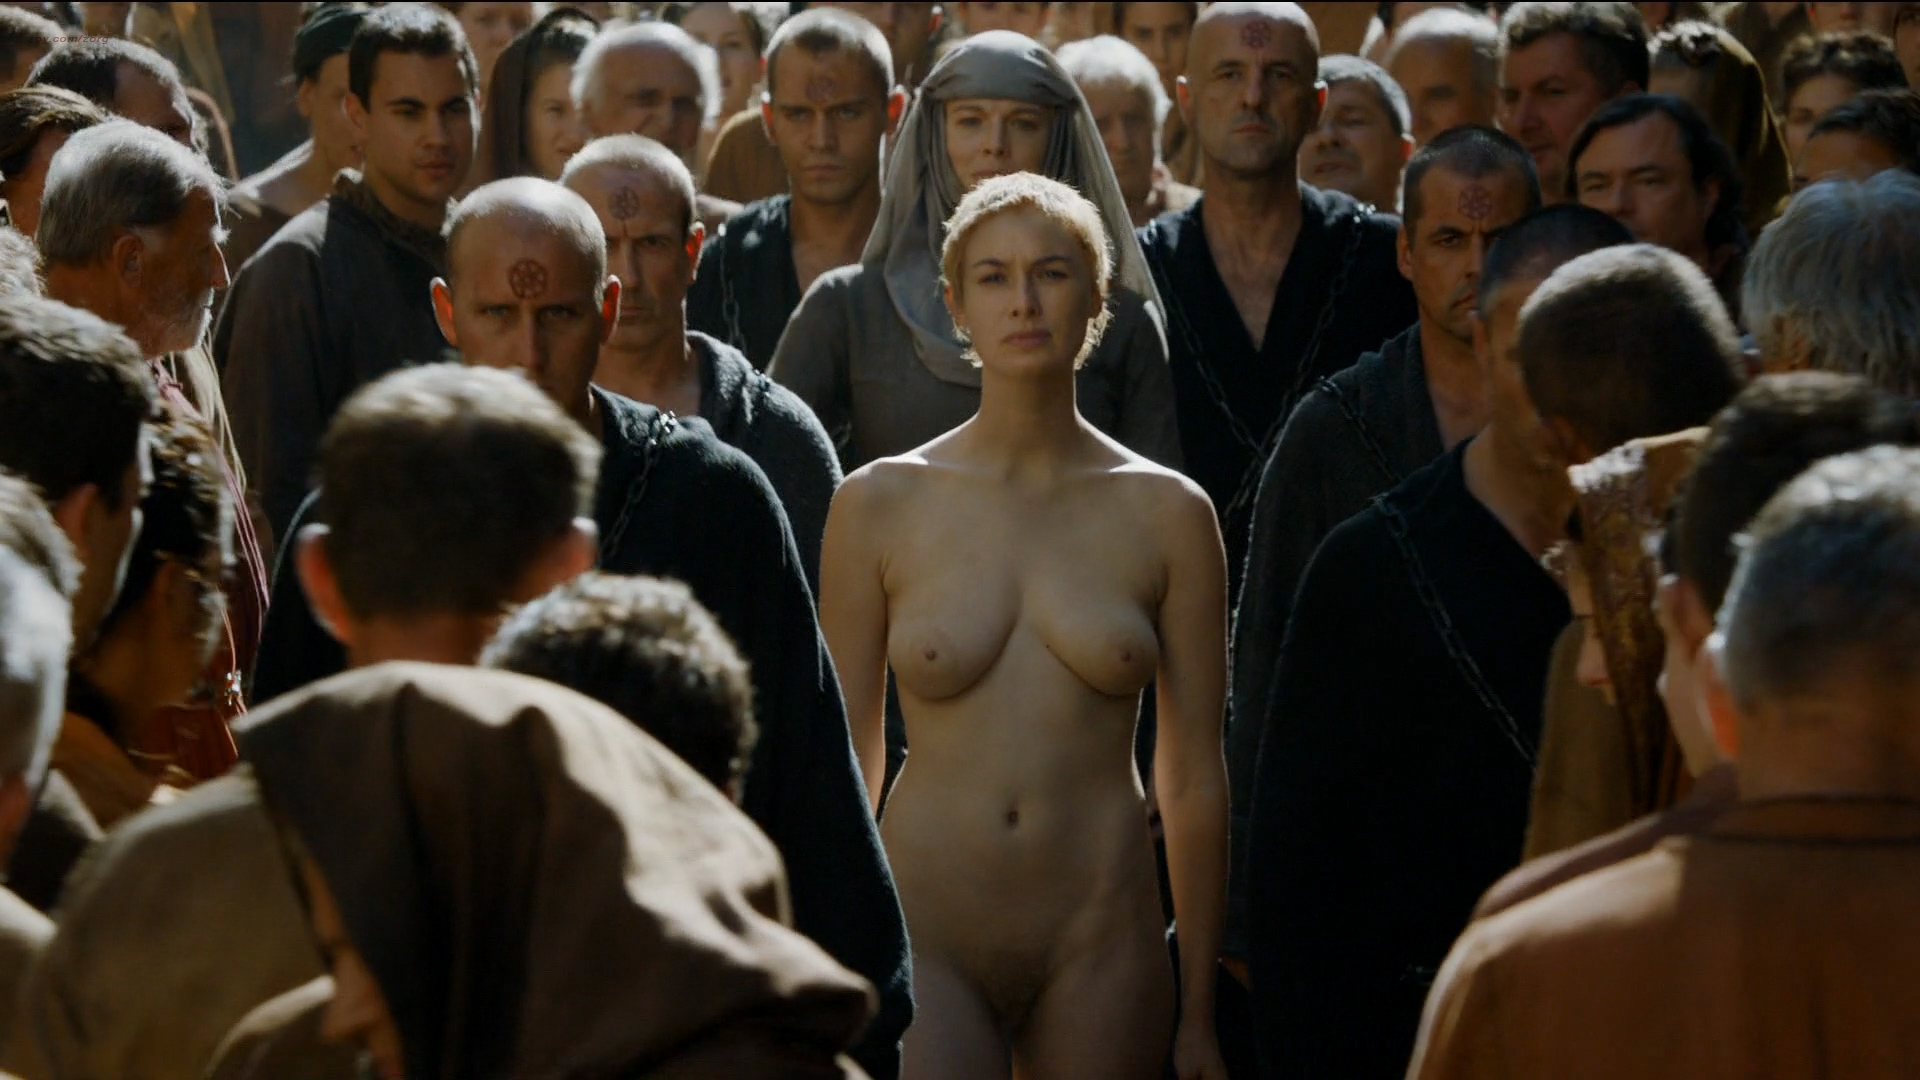 Lena Headey nude full frontal bush - Game of Thrones (2015) s5e10 hd720-1080p (14)